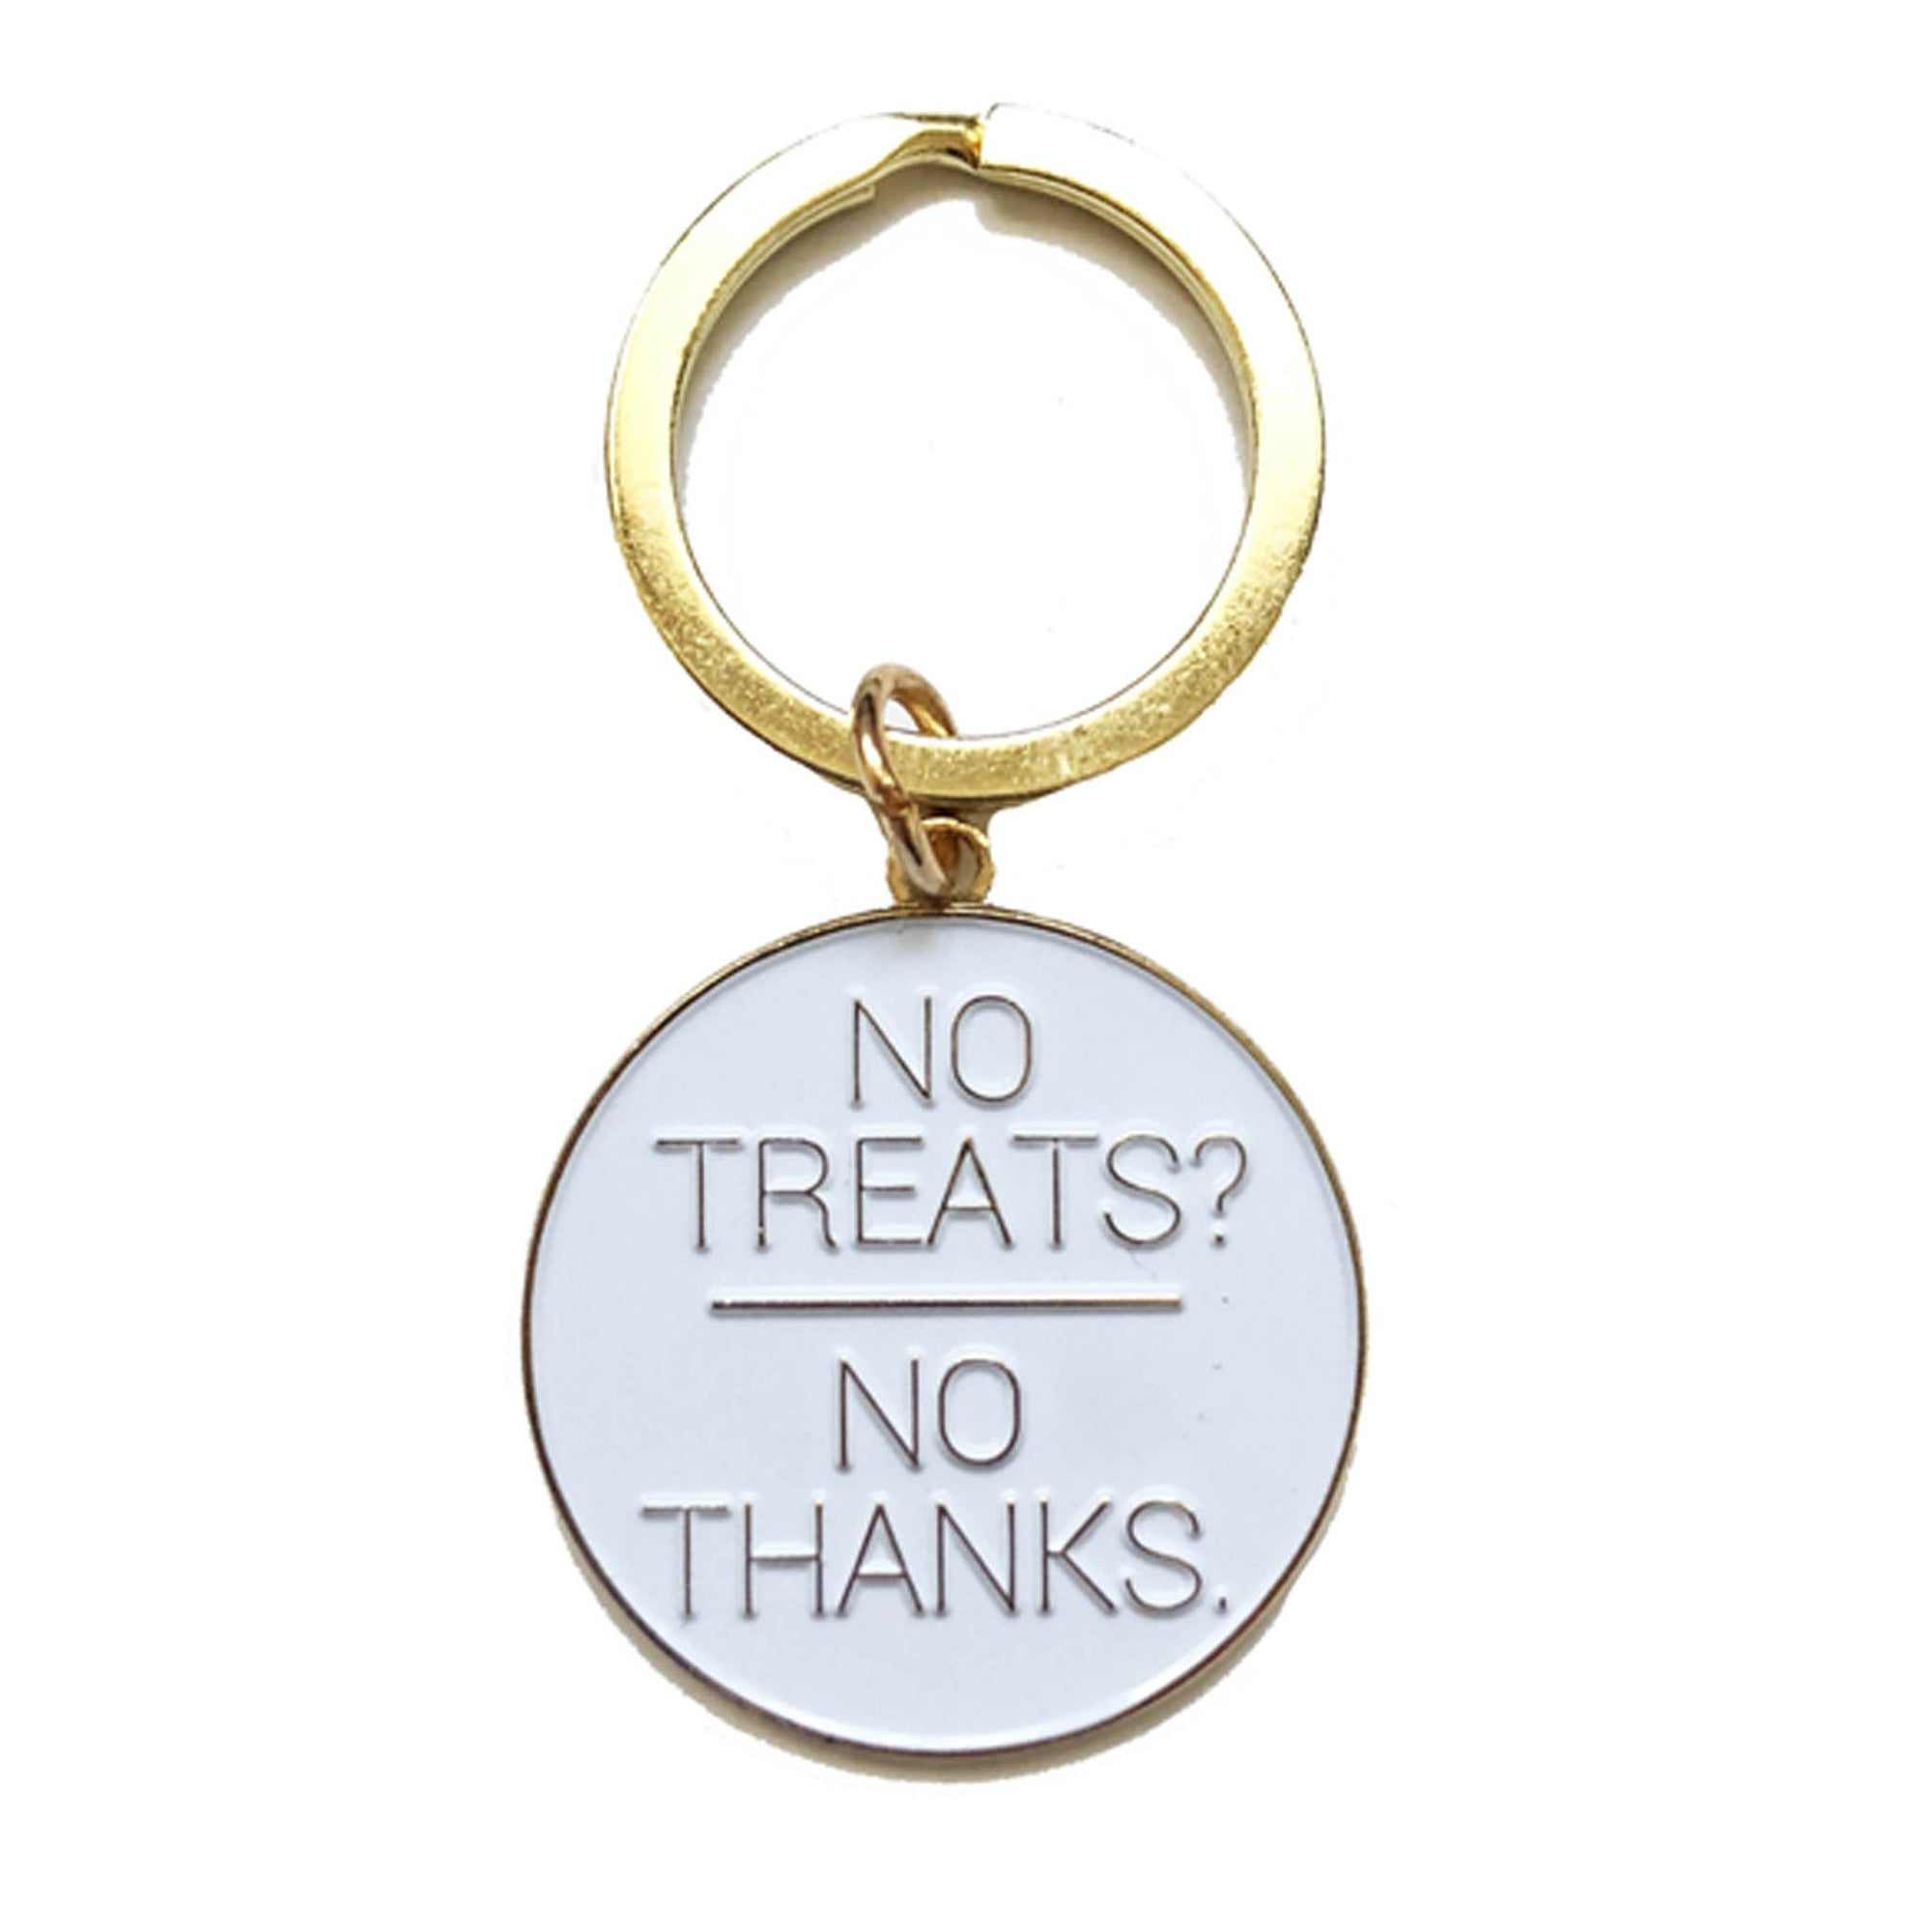 NO TREATS? NO THANKS. DOG ID TAG CHARM - Toys For A Pet